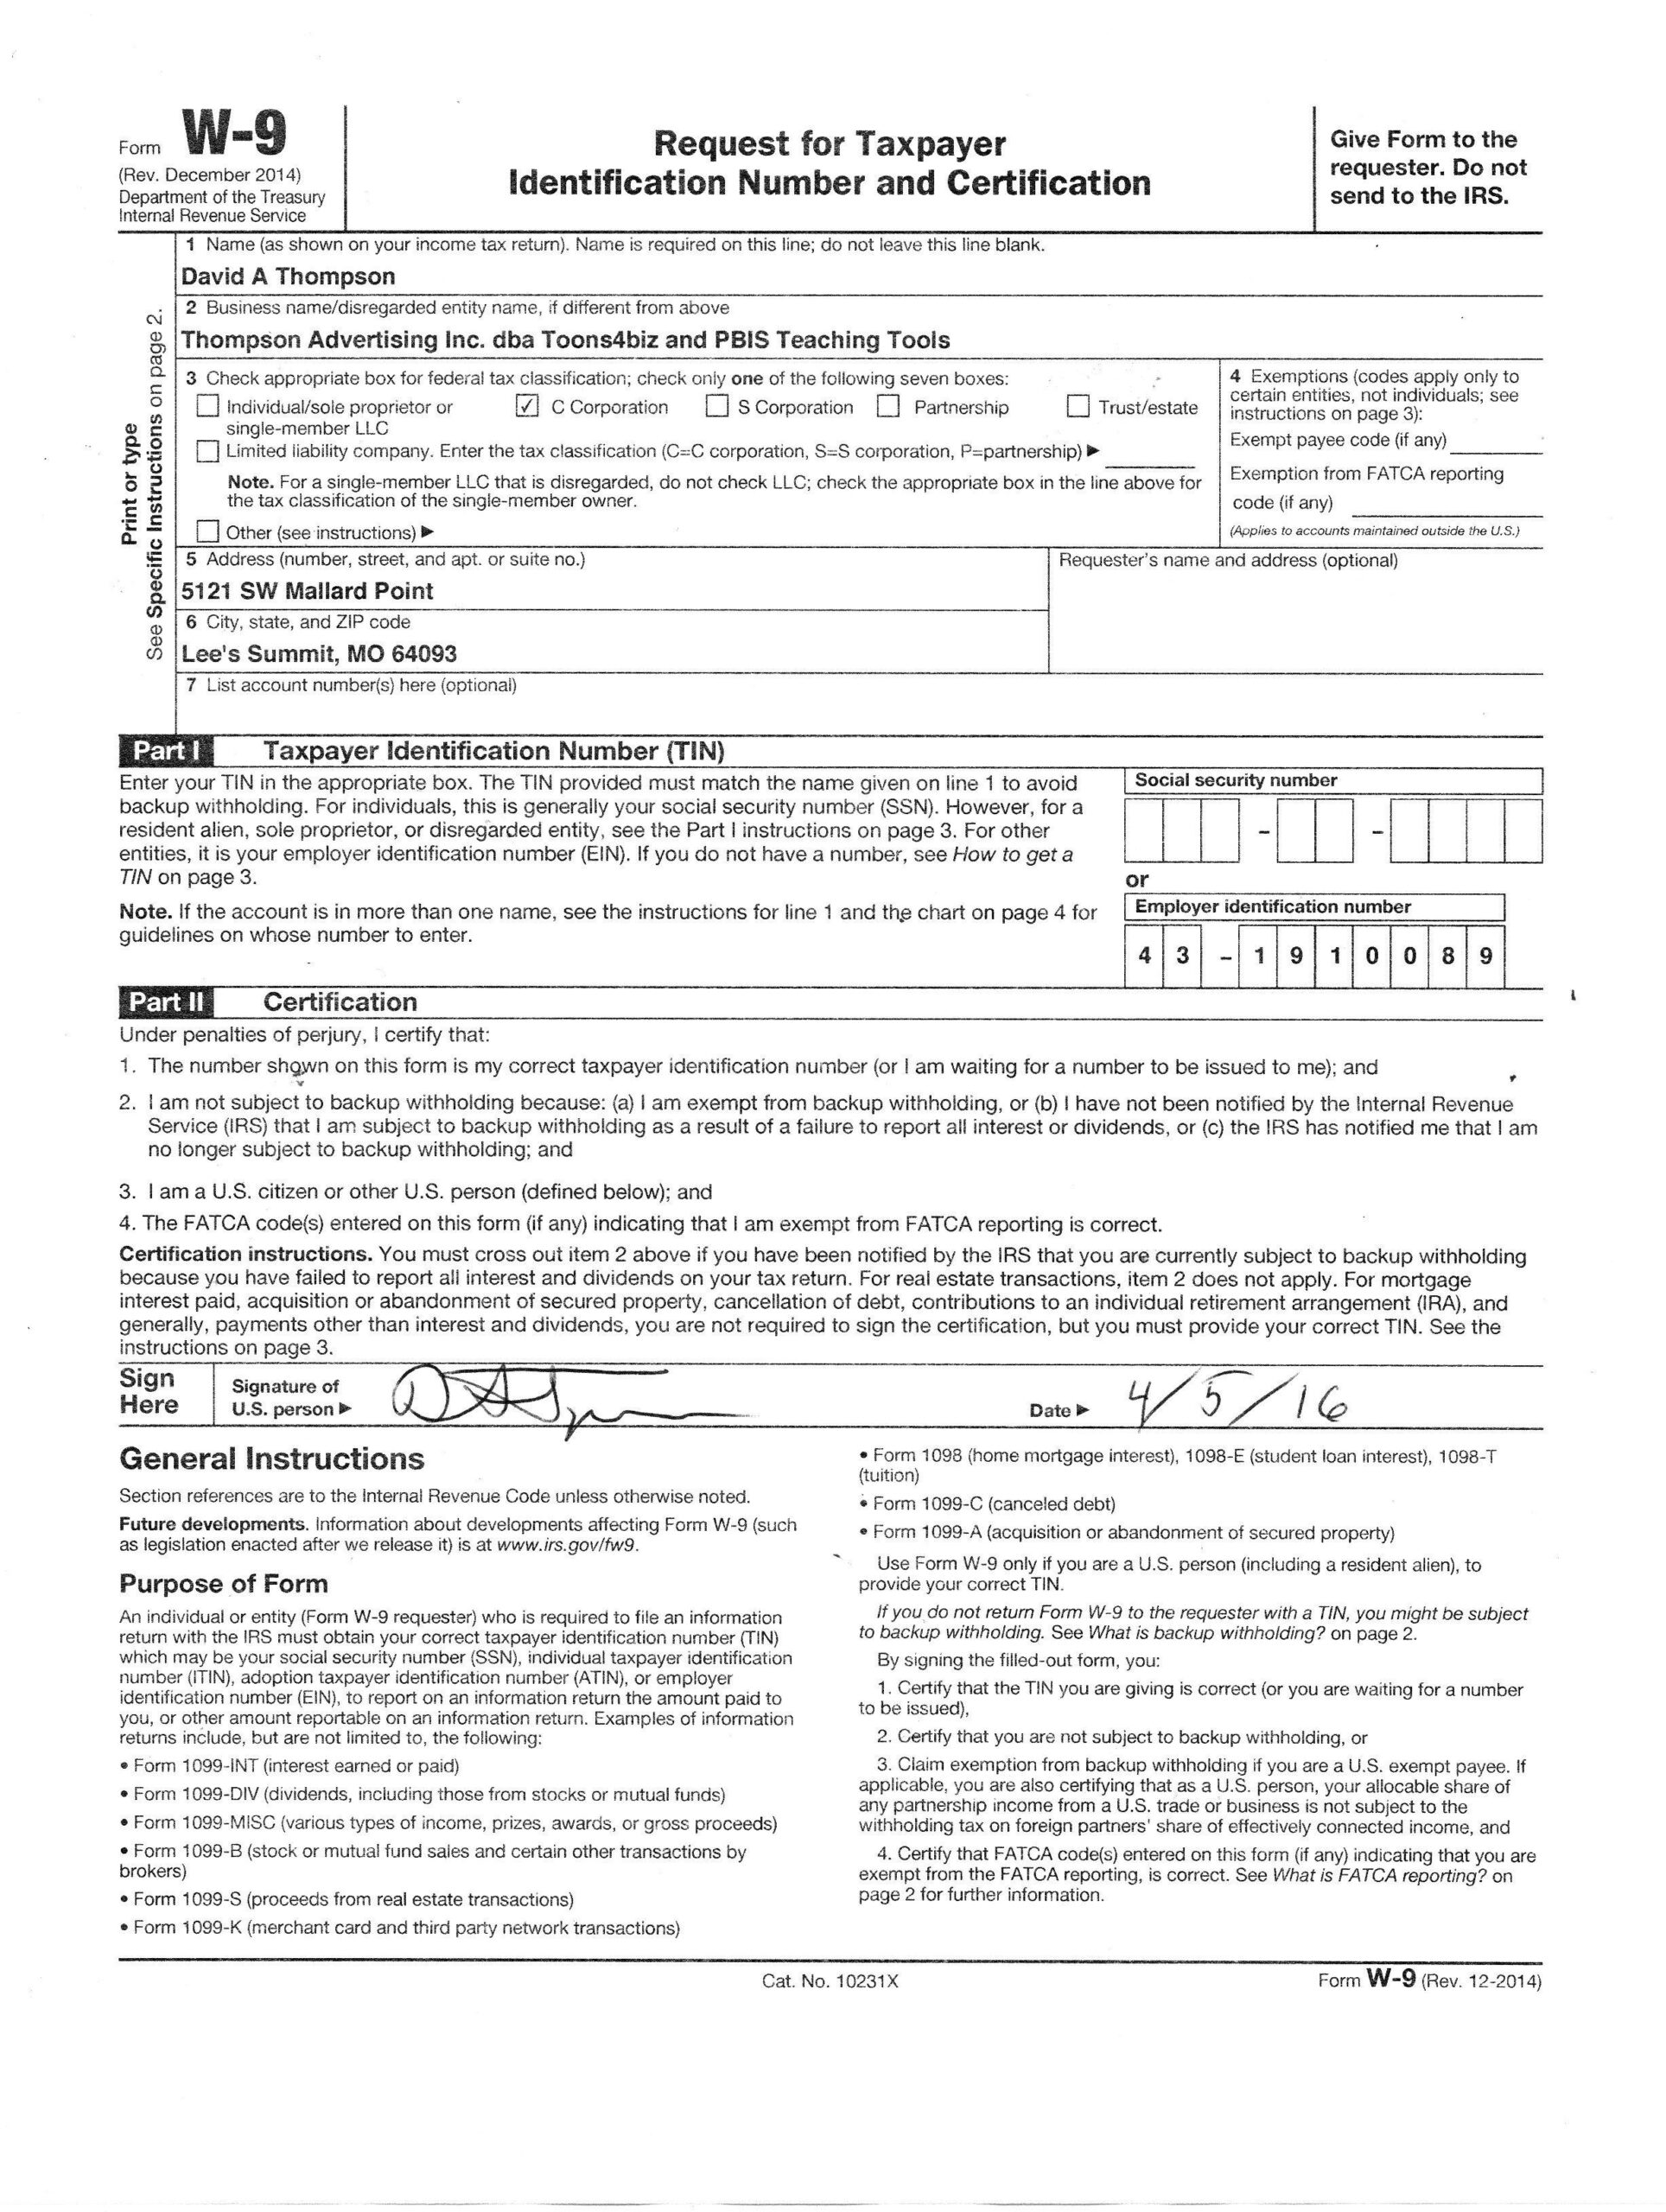 Downloadable W 9 Form W9 Form Mascot Junction In 2020 regarding Printable Irs W 9 Form